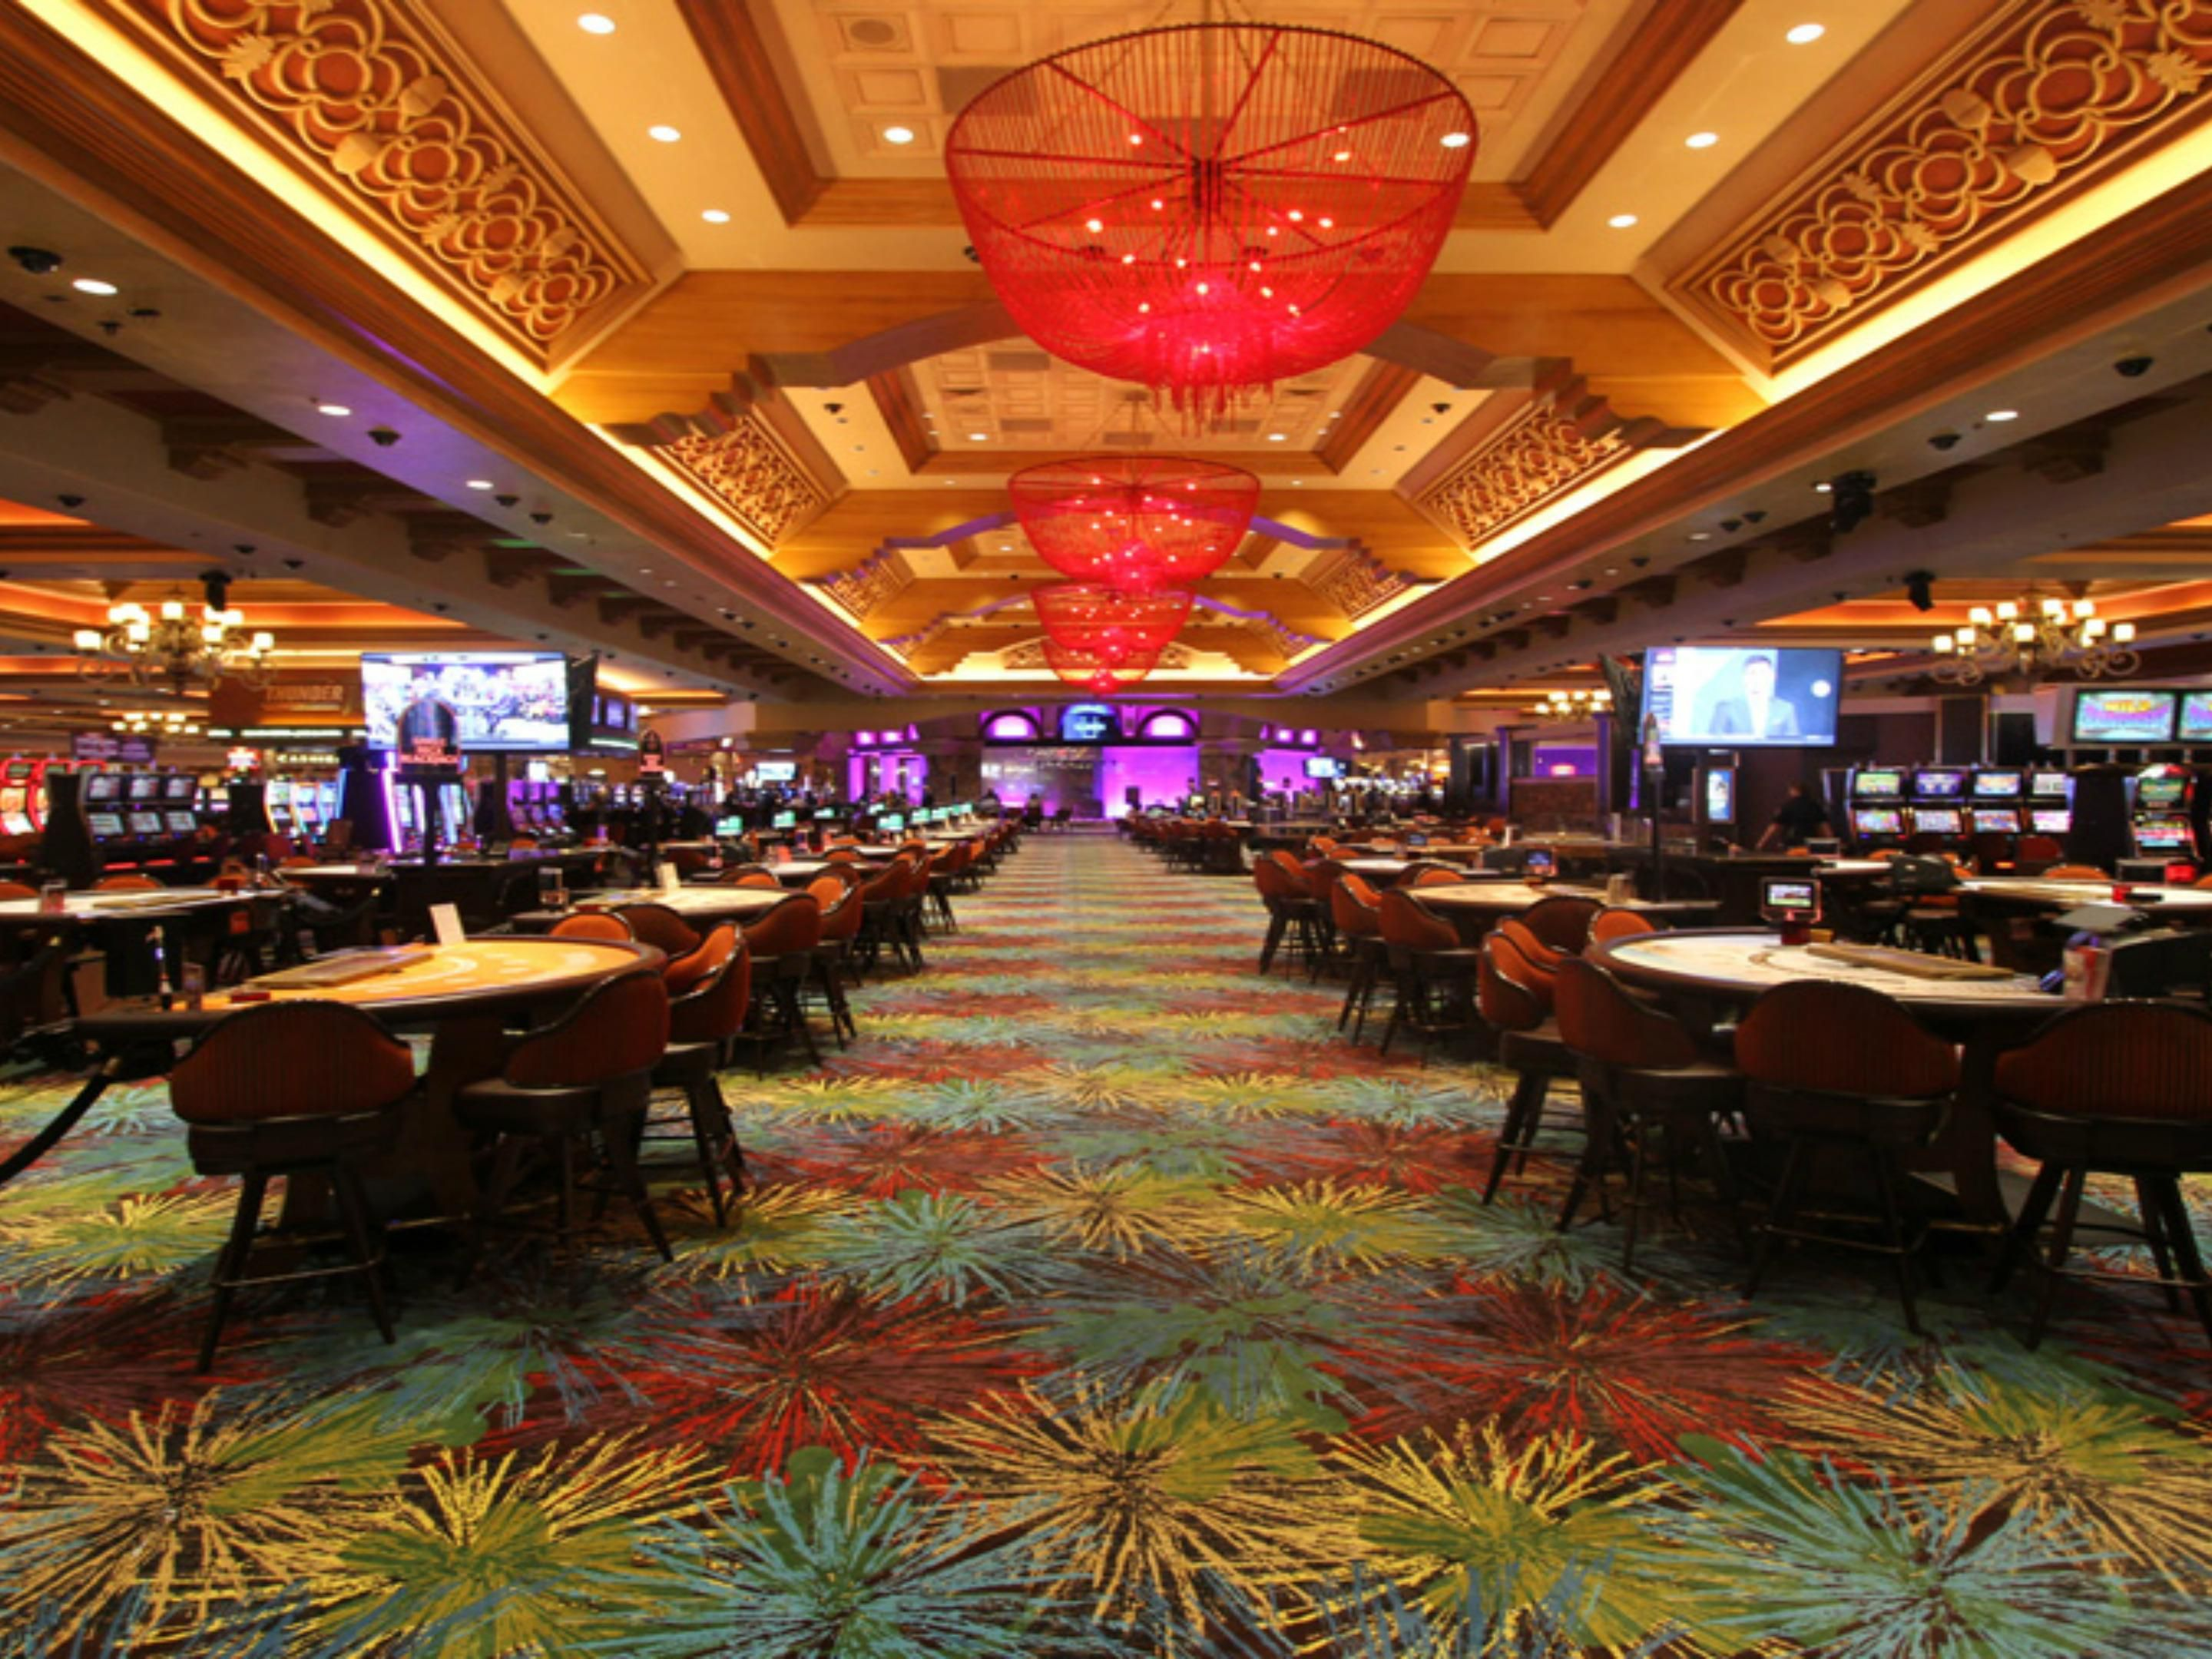 Thunder Valley Casino with 144,000 sq. feet of gaming Excitement!